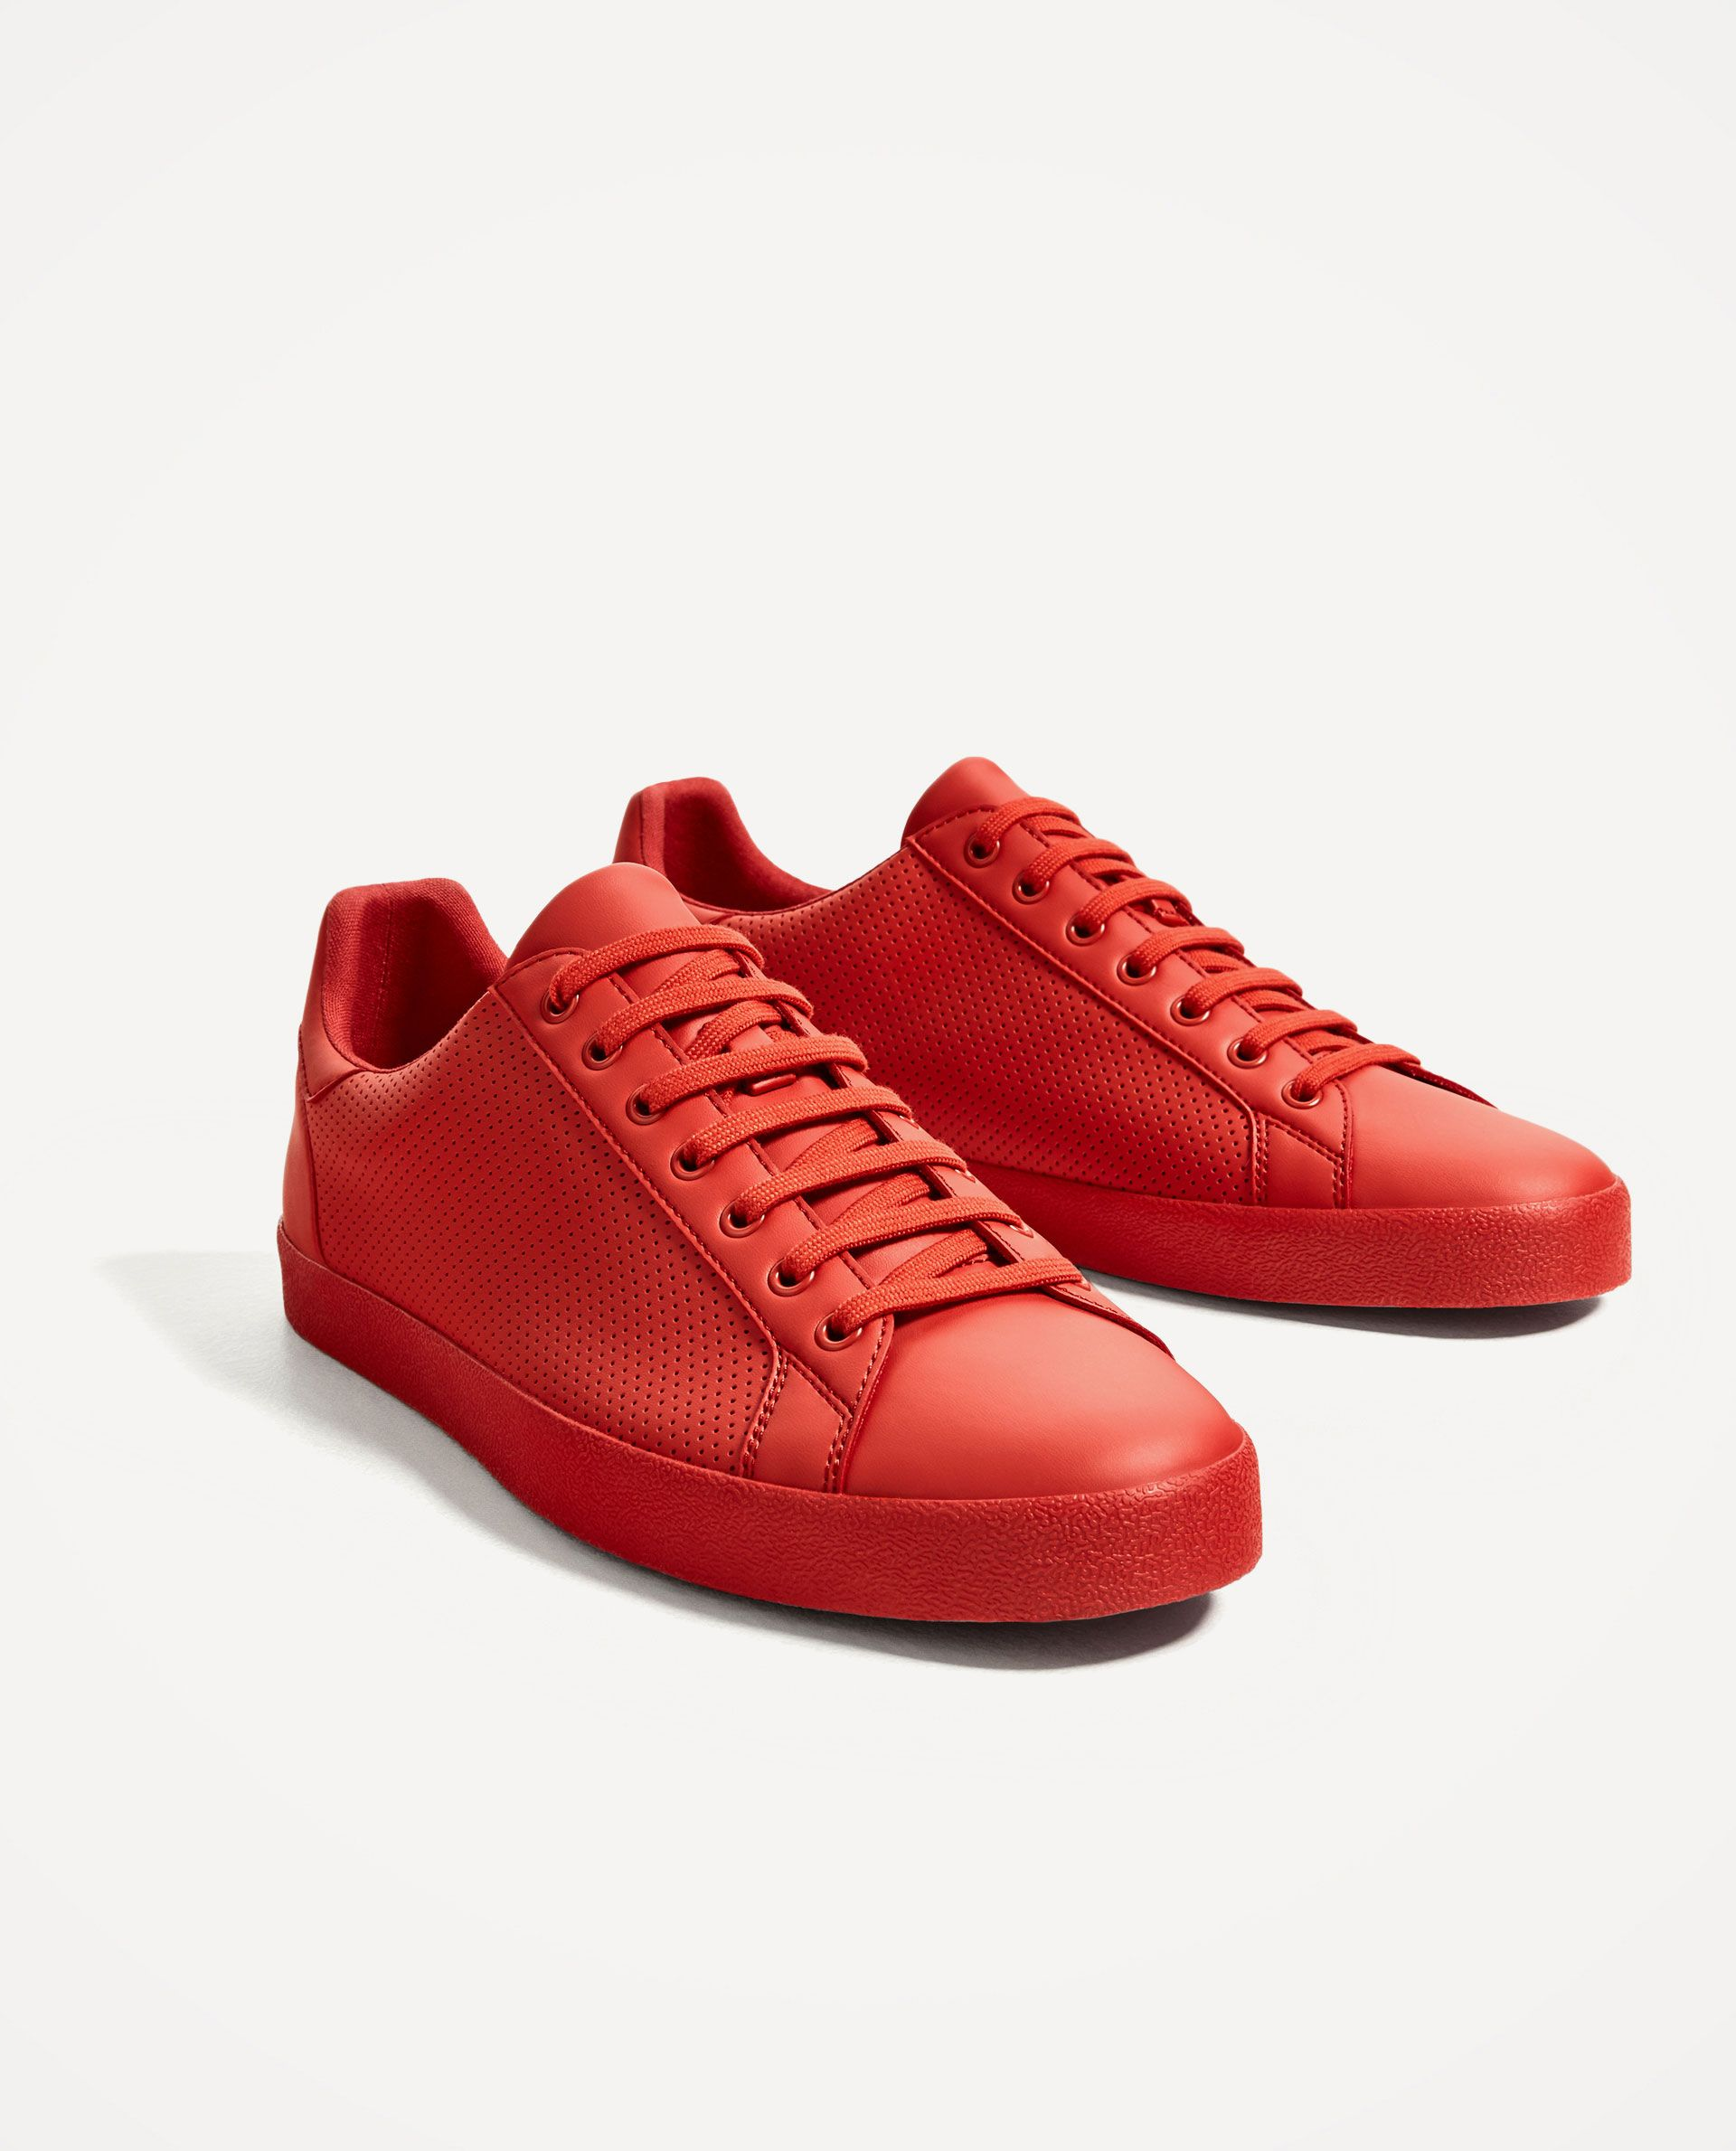 brand new 61e60 d5e81 RED PERFORATED PLIMSOLLS Vegan Sneakers, Zara Sneakers, Red Sneakers, Zara  Shoes, Vegan